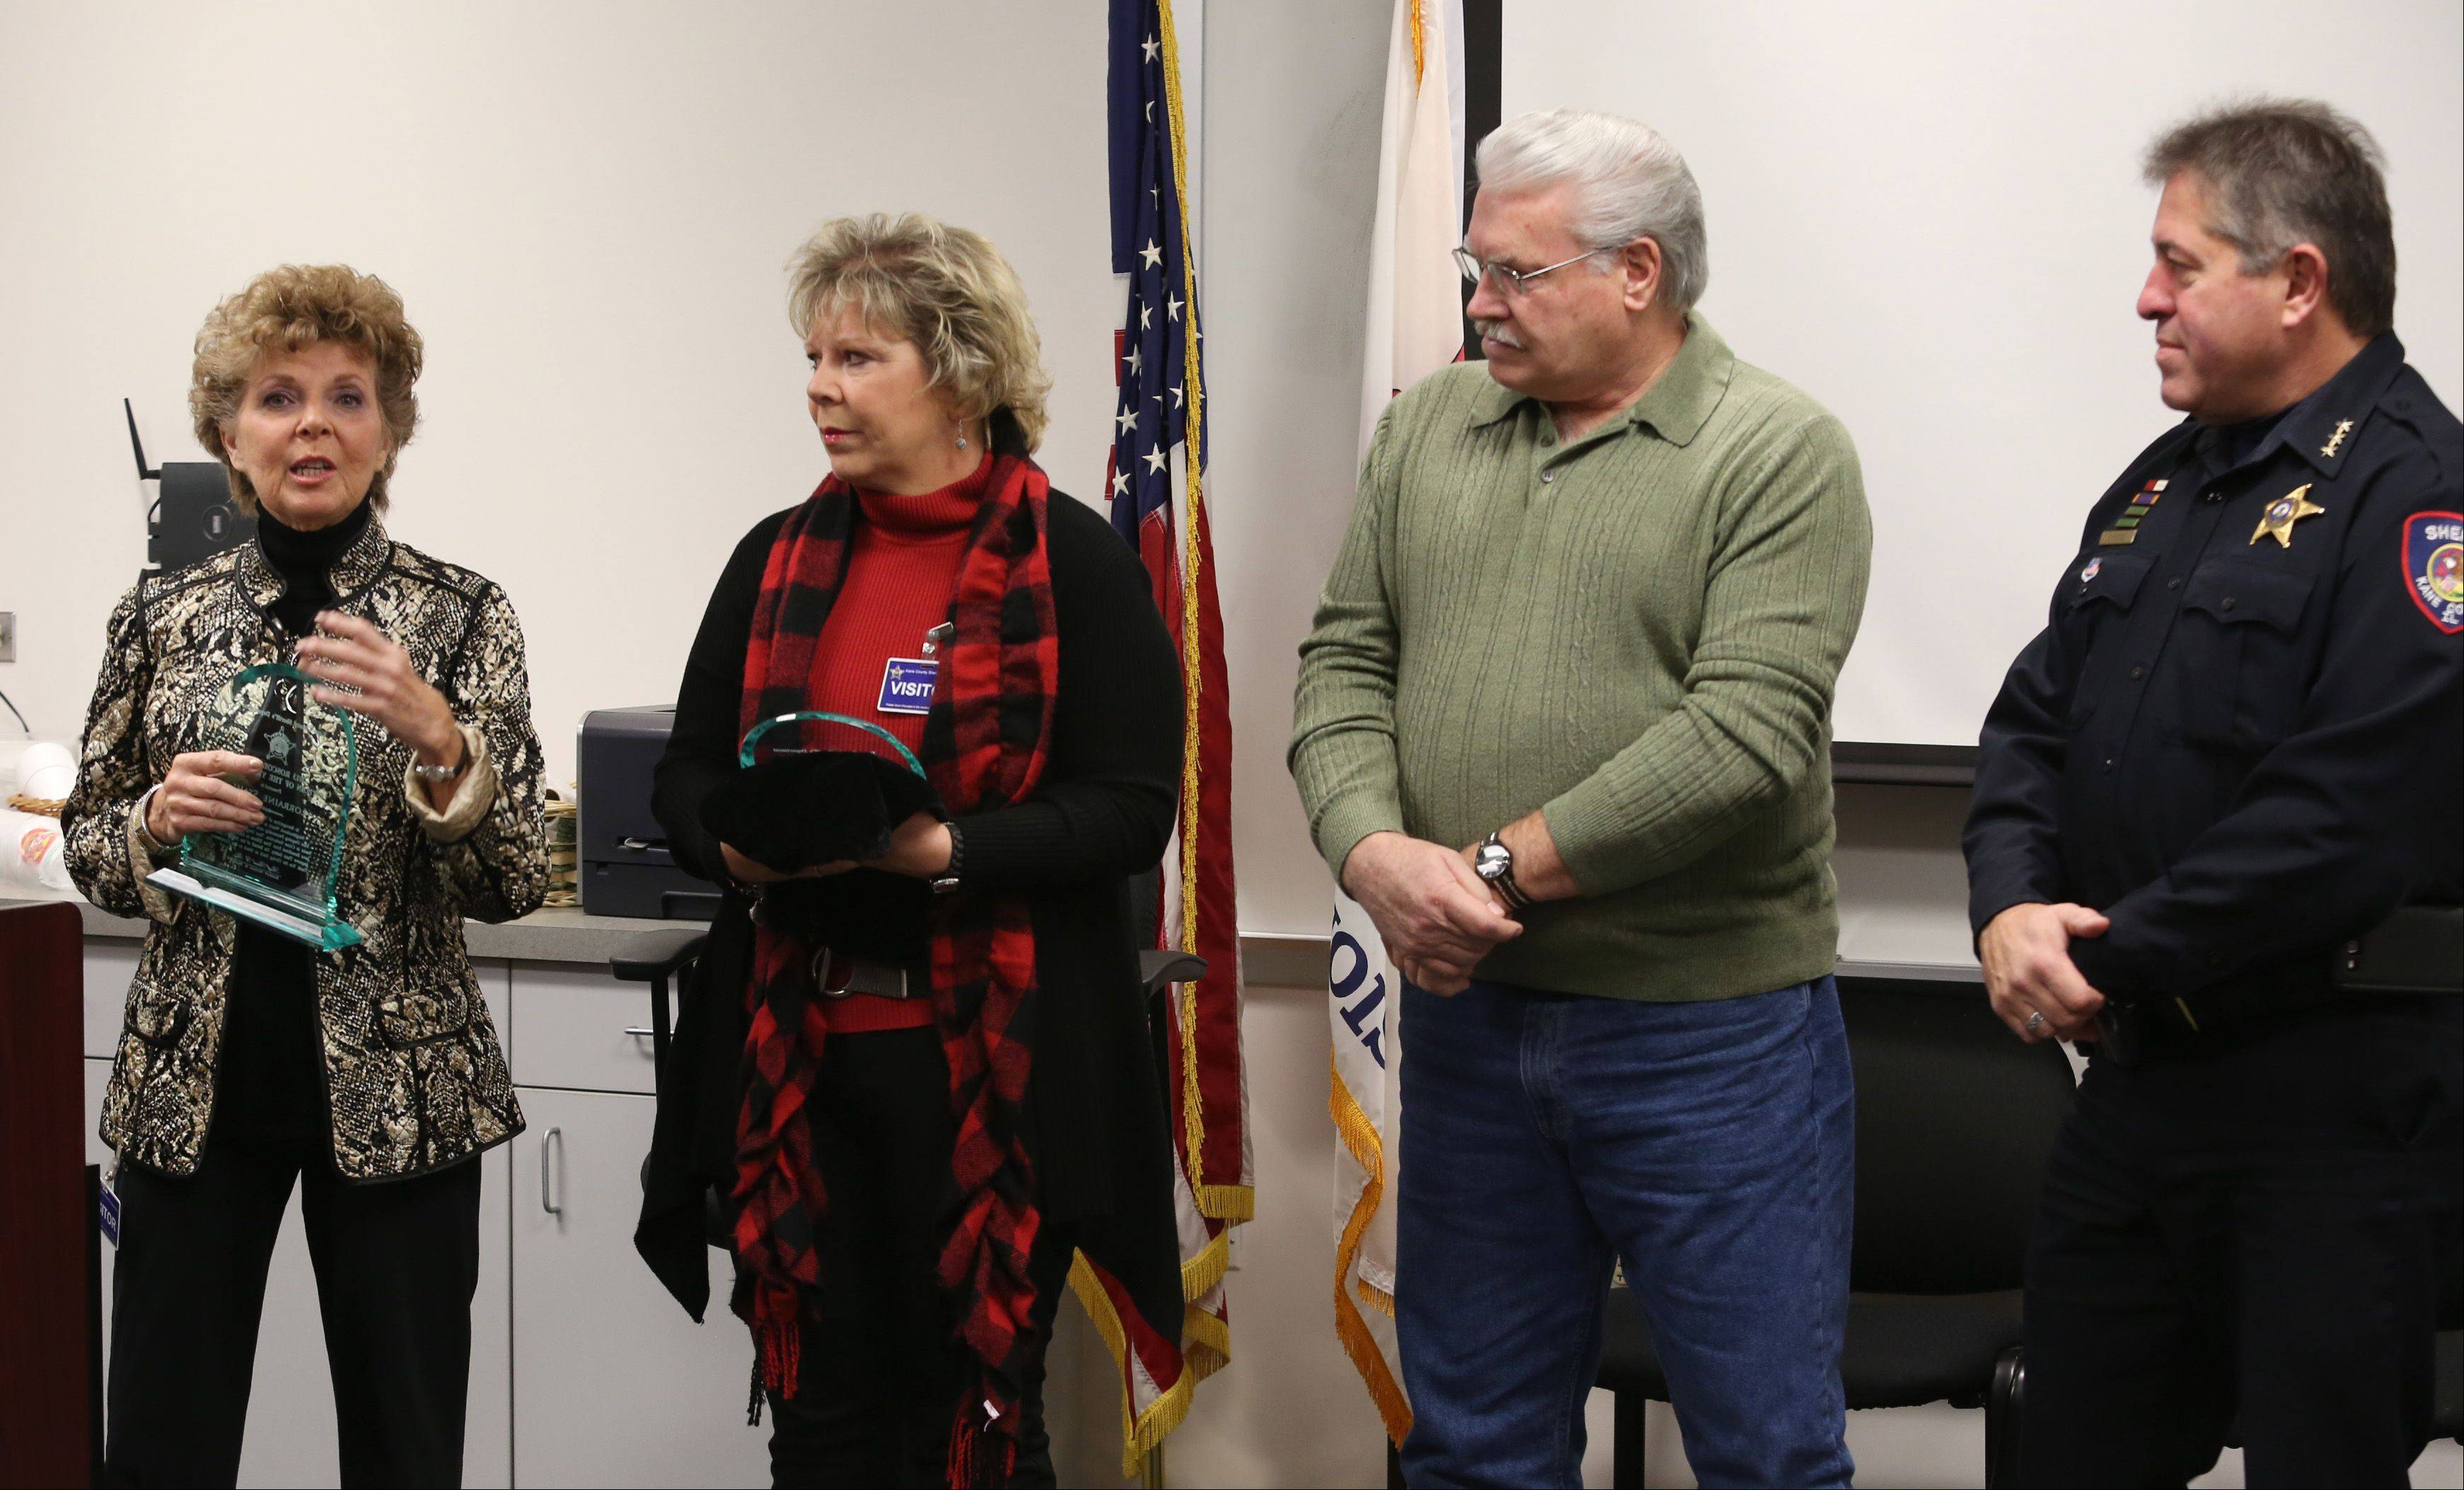 Roscoe Ebey Citizen of the Year co-recipients Lorraine Stahl, far left, and Christine Propheter are flanked by Richard Ebey, son of the award�s namesake, and Kane County Sheriff Pat Perez during a ceremony Thursday in St. Charles. Lea Minalga of St. Charles also shared in the award.